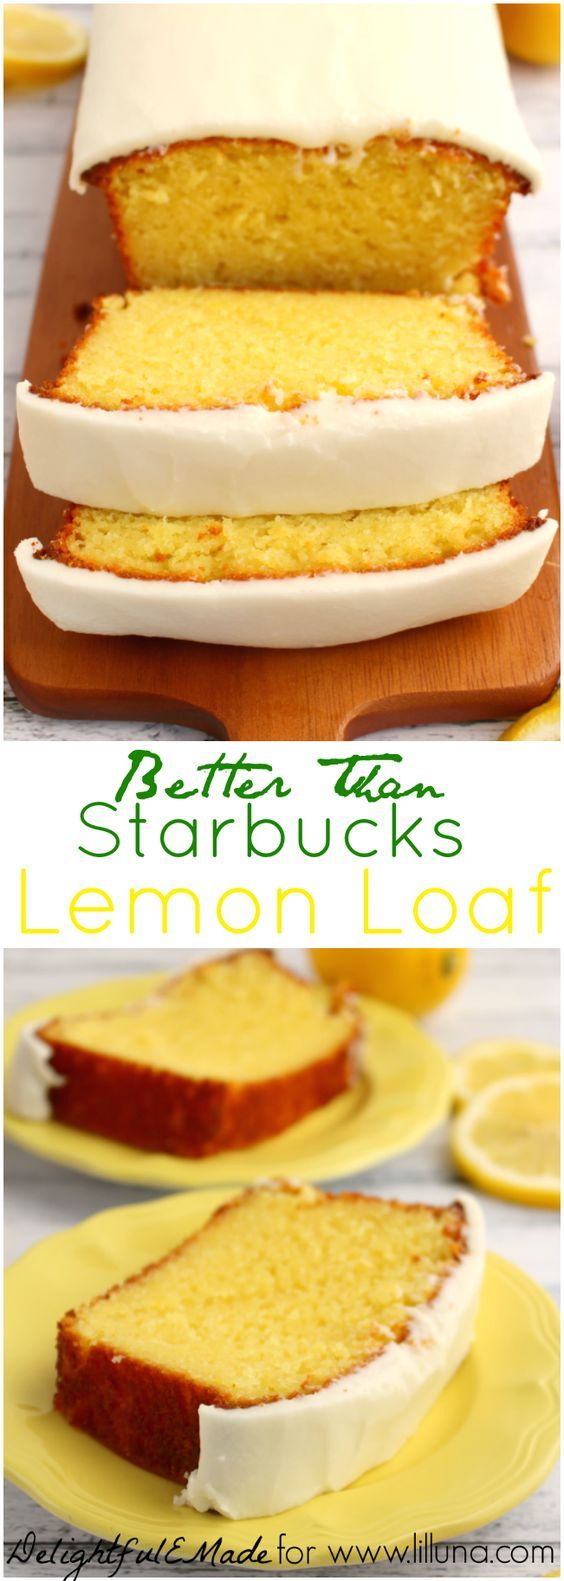 If you like Starbucks Lemon Loaf, then you'll love this moist, delicious Lemon cake! This easy to make recipe is loaded with delicious lemon…  1 Lemon, zest of 3 Eggs 1/3 cup Lemon juice, fresh 3 tbsp Lemon juice Backen und würzen 1/2 tsp Baking powder 1/2 tsp Baking soda 1 1/2 cup Flour 3 tsp Lemon extract 1 (3.4 oz.) package Lemon pudding mix, instant 1 1/2 cup Powdered sugar 1/2 tsp Salt 1 cup Sugar 1 tsp Vanilla Essig und Öl 1/2 cup Oil Milchprodukte 5 tbsp Butter 3/4 cup Greek yogurt…